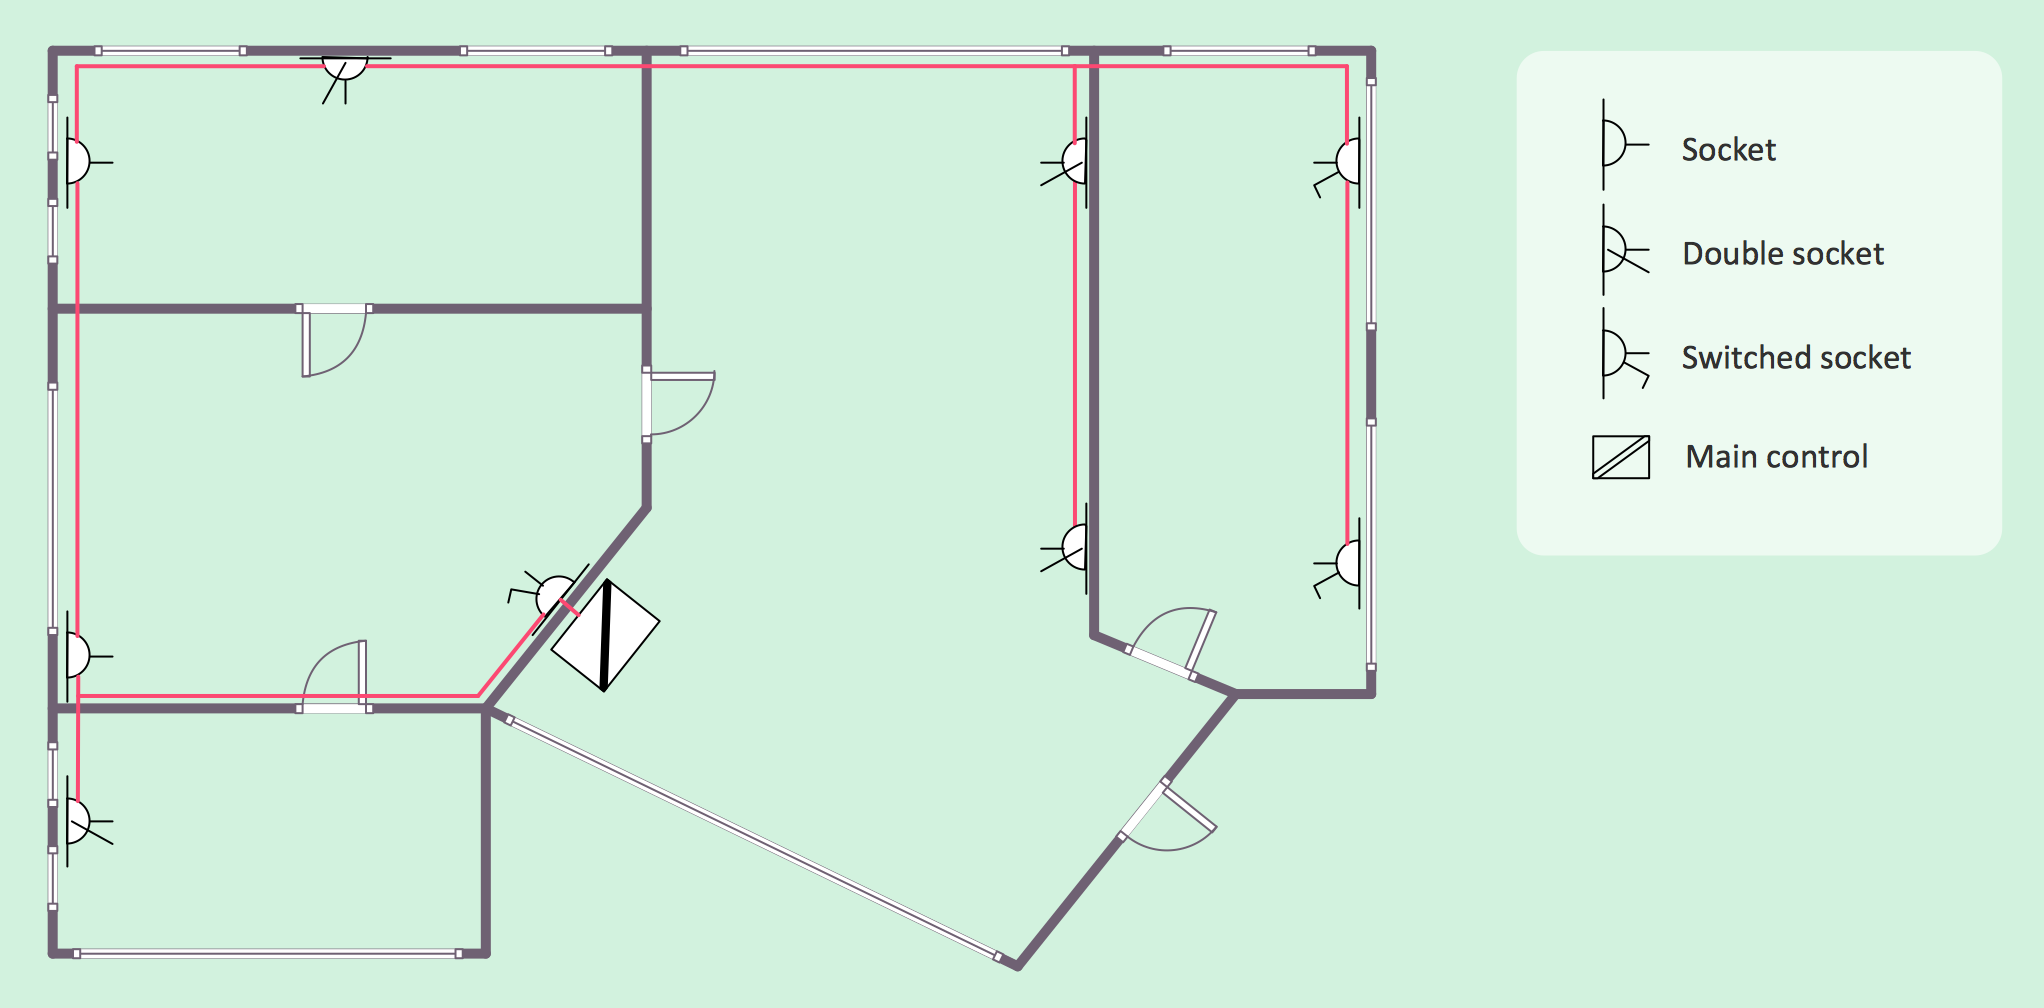 House Electrical Plan Software Diagram Wiring Of Houses Diagrams